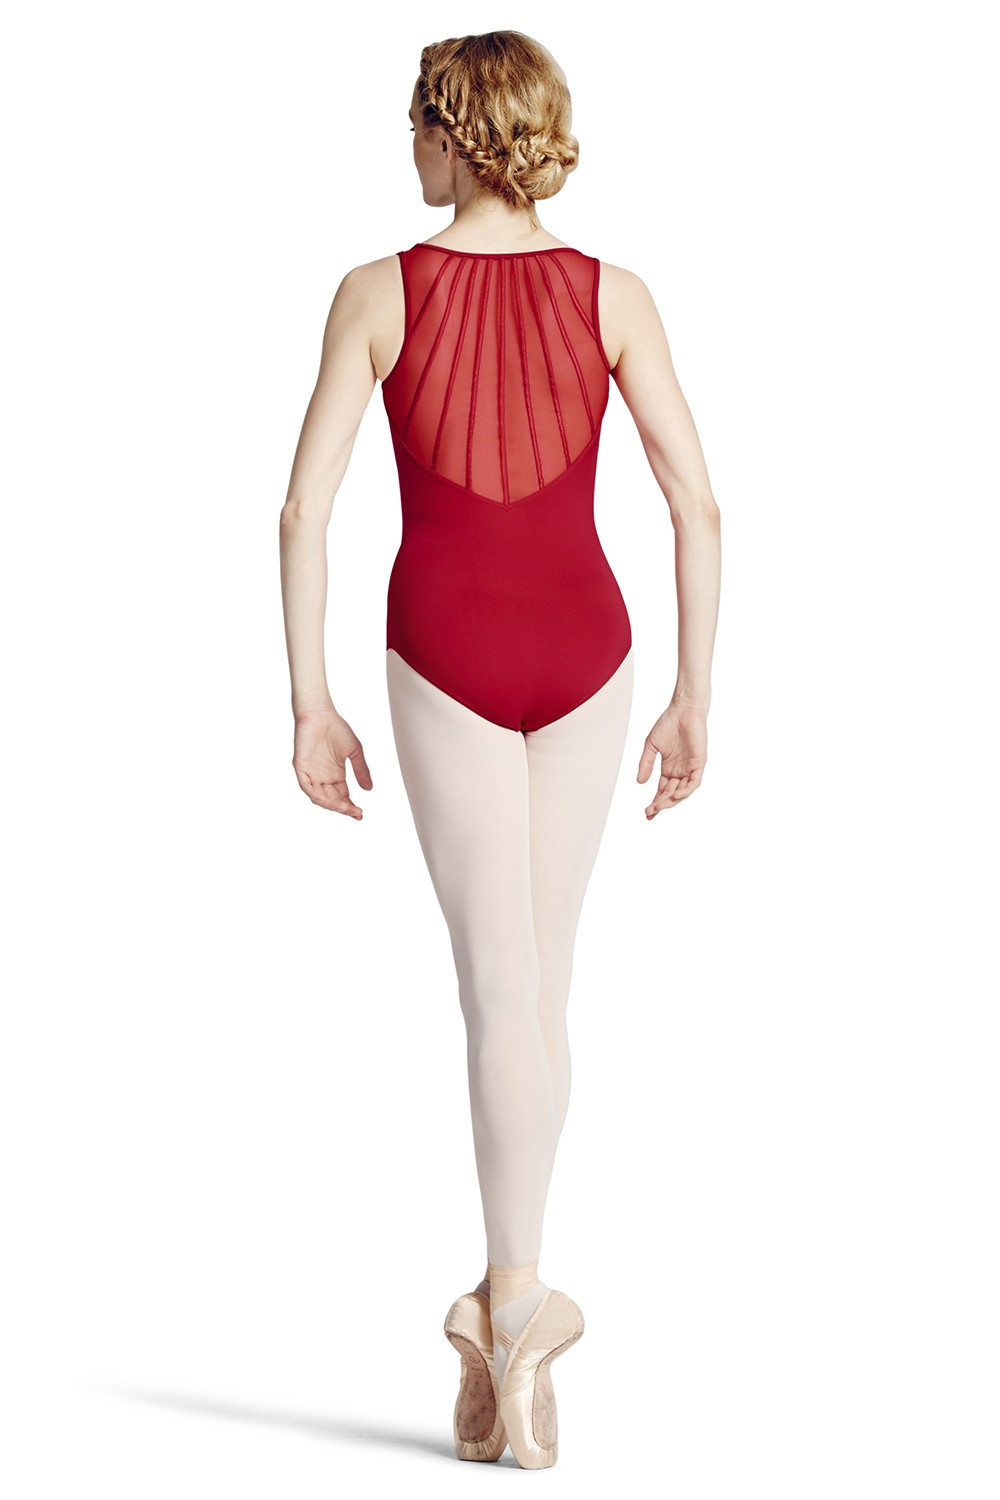 Gamma Women's Dance Leotards